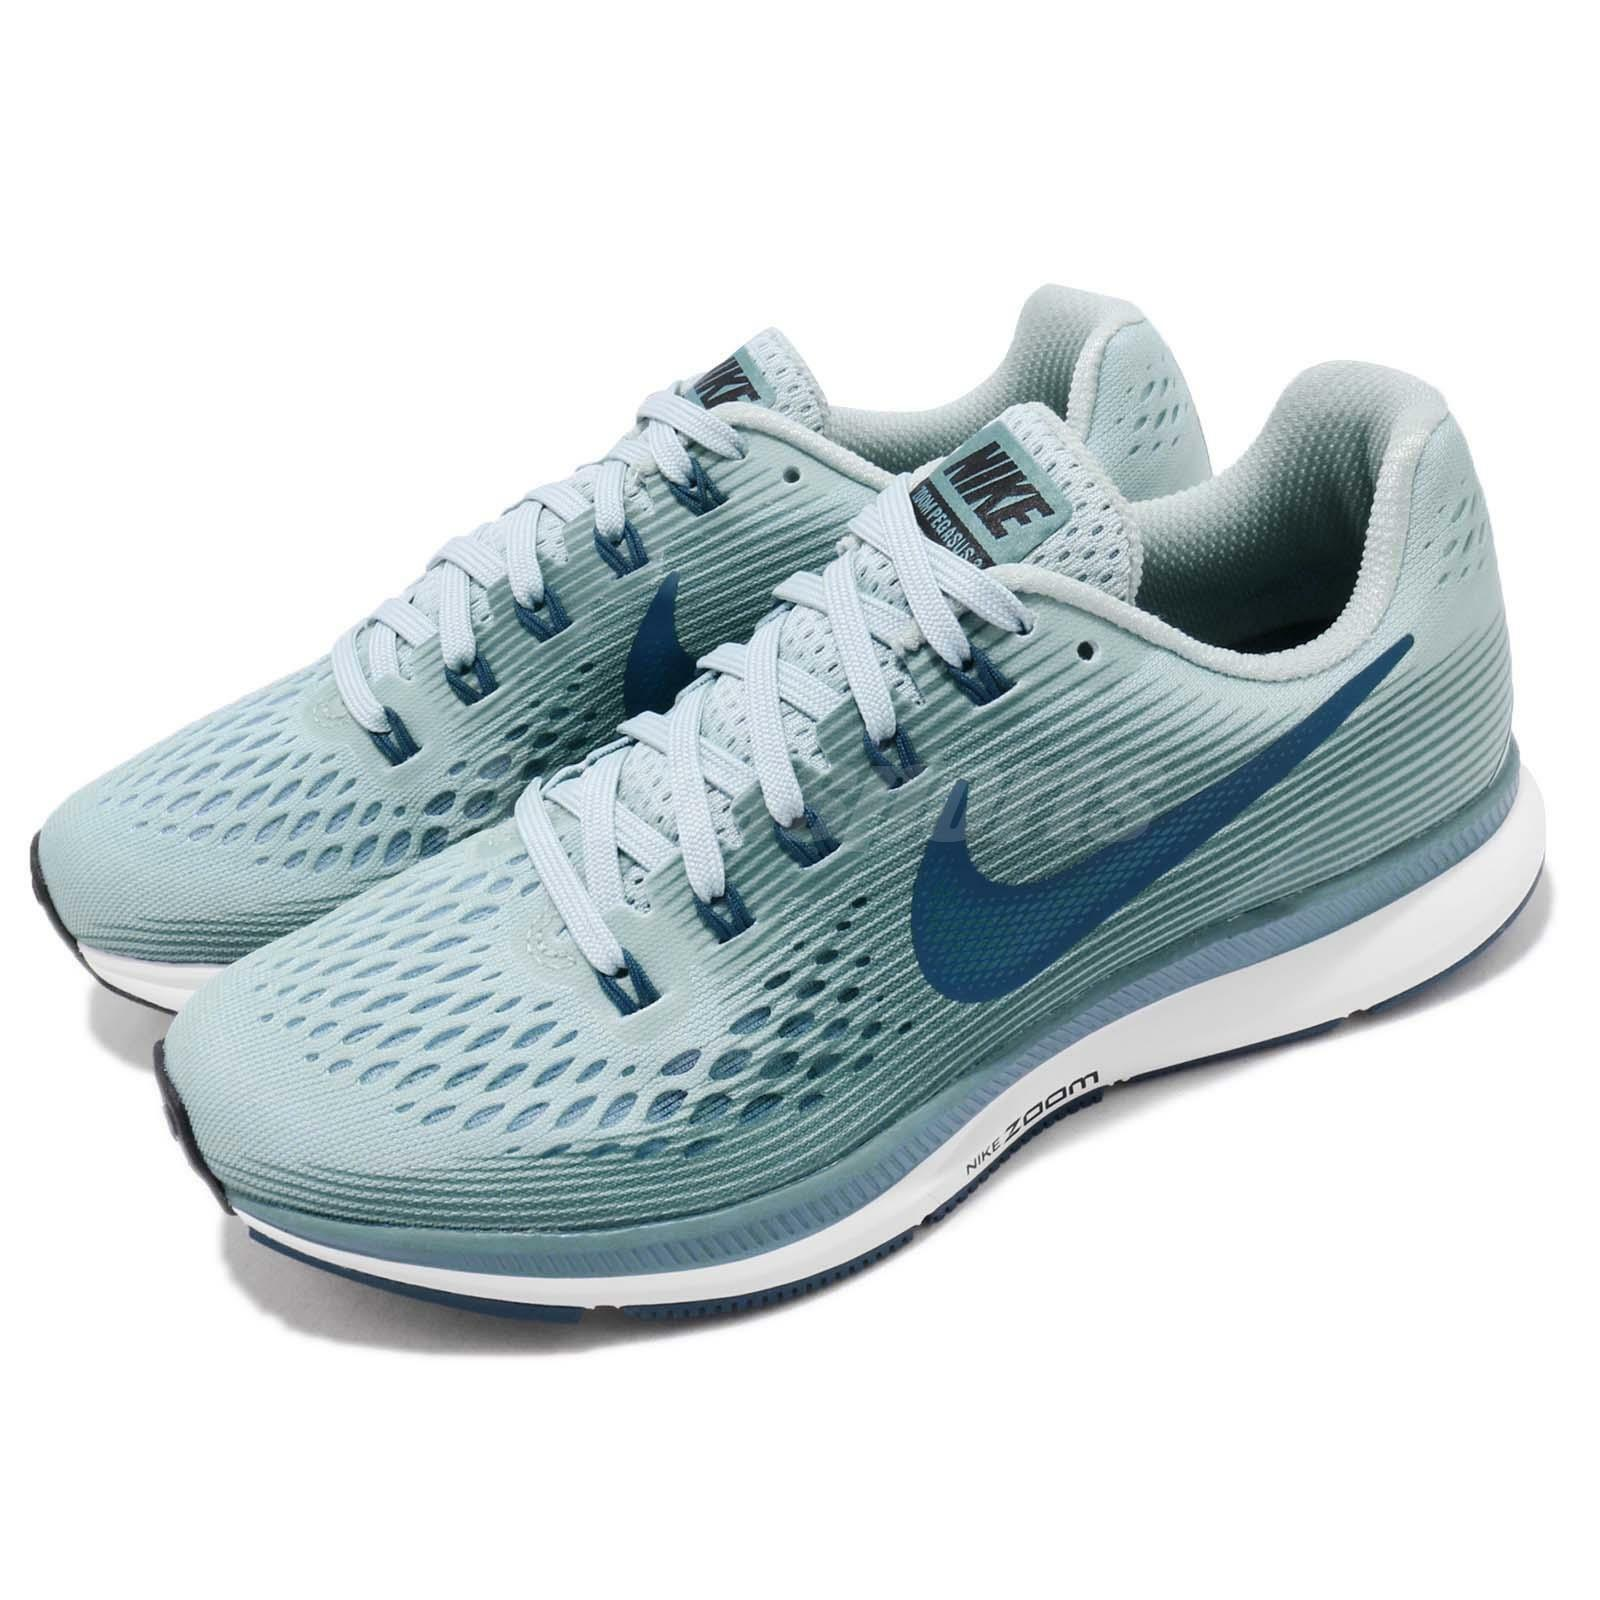 Nike Wmns Air Zoom Pegasus 34 Ocean Bliss bluee Women Running shoes 880560-408